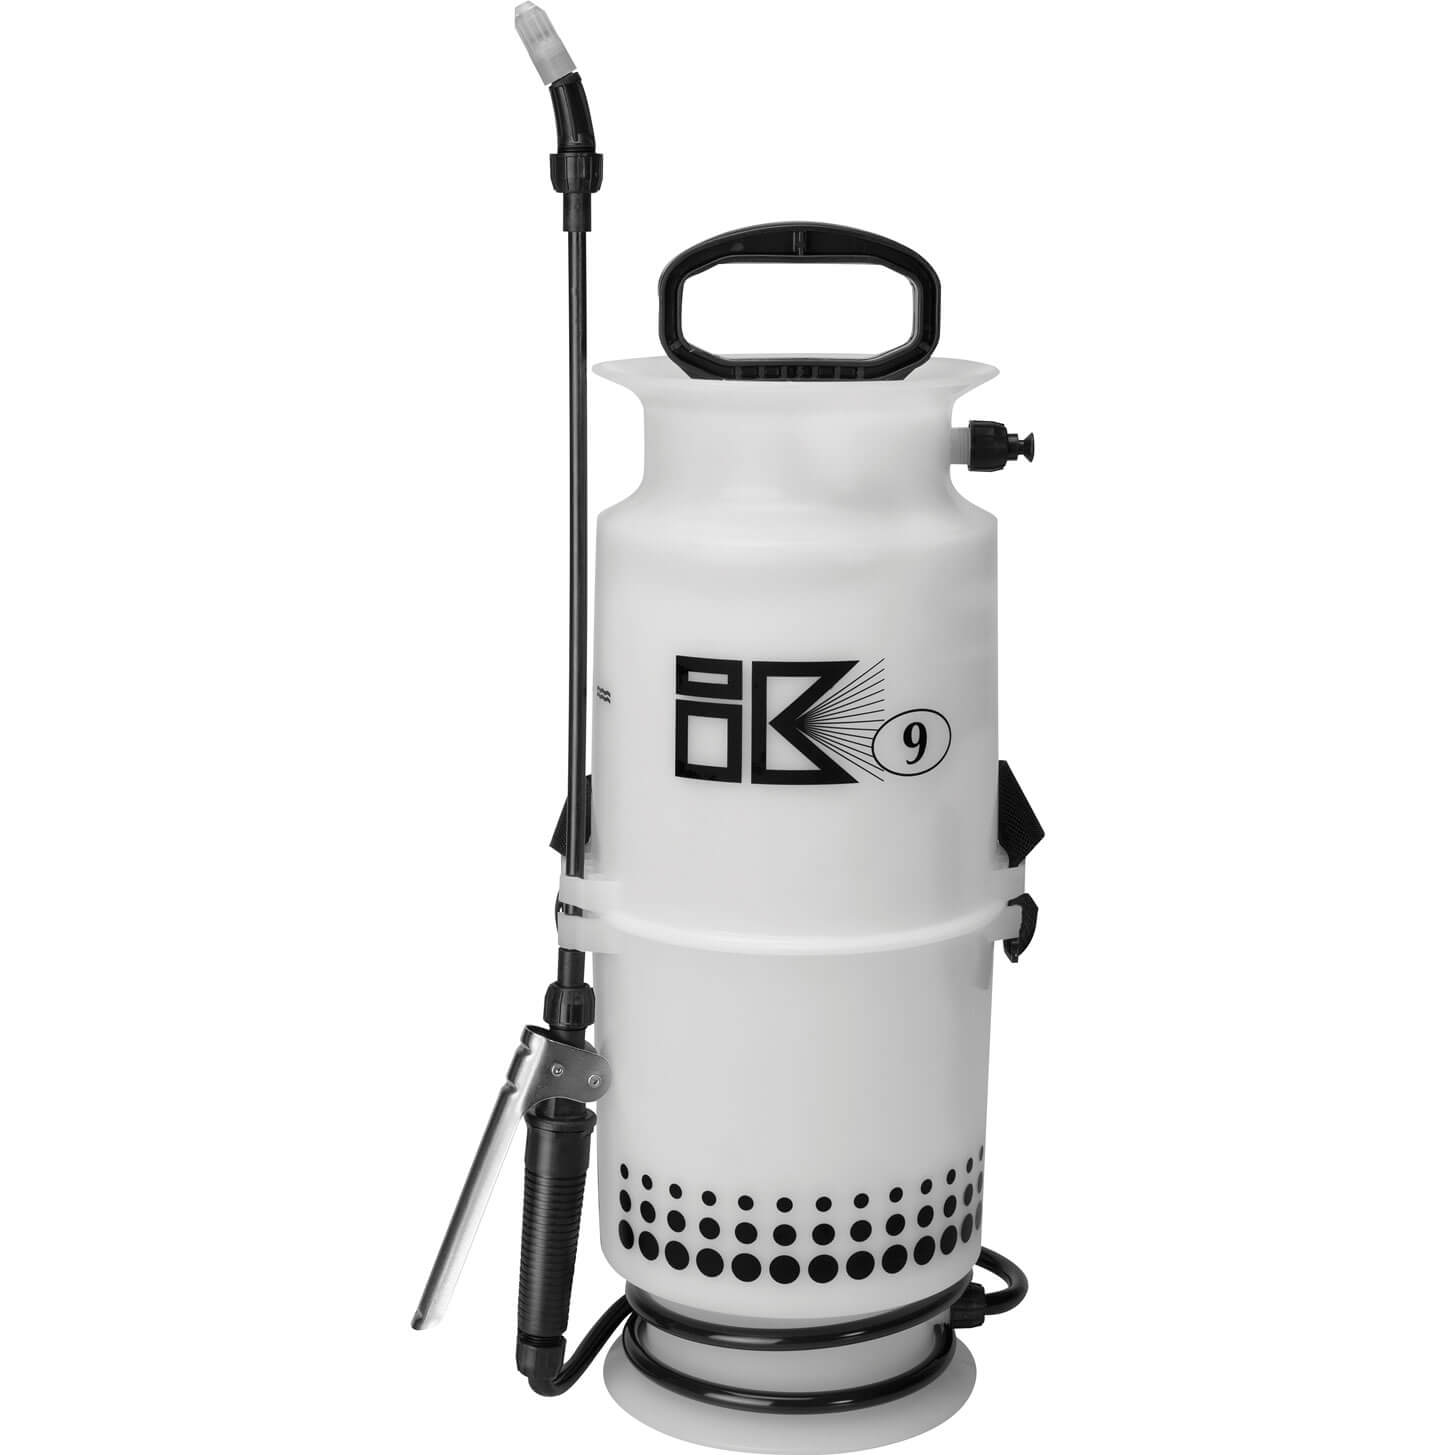 Image of Matabi IK Pressure Water Sprayer 6l